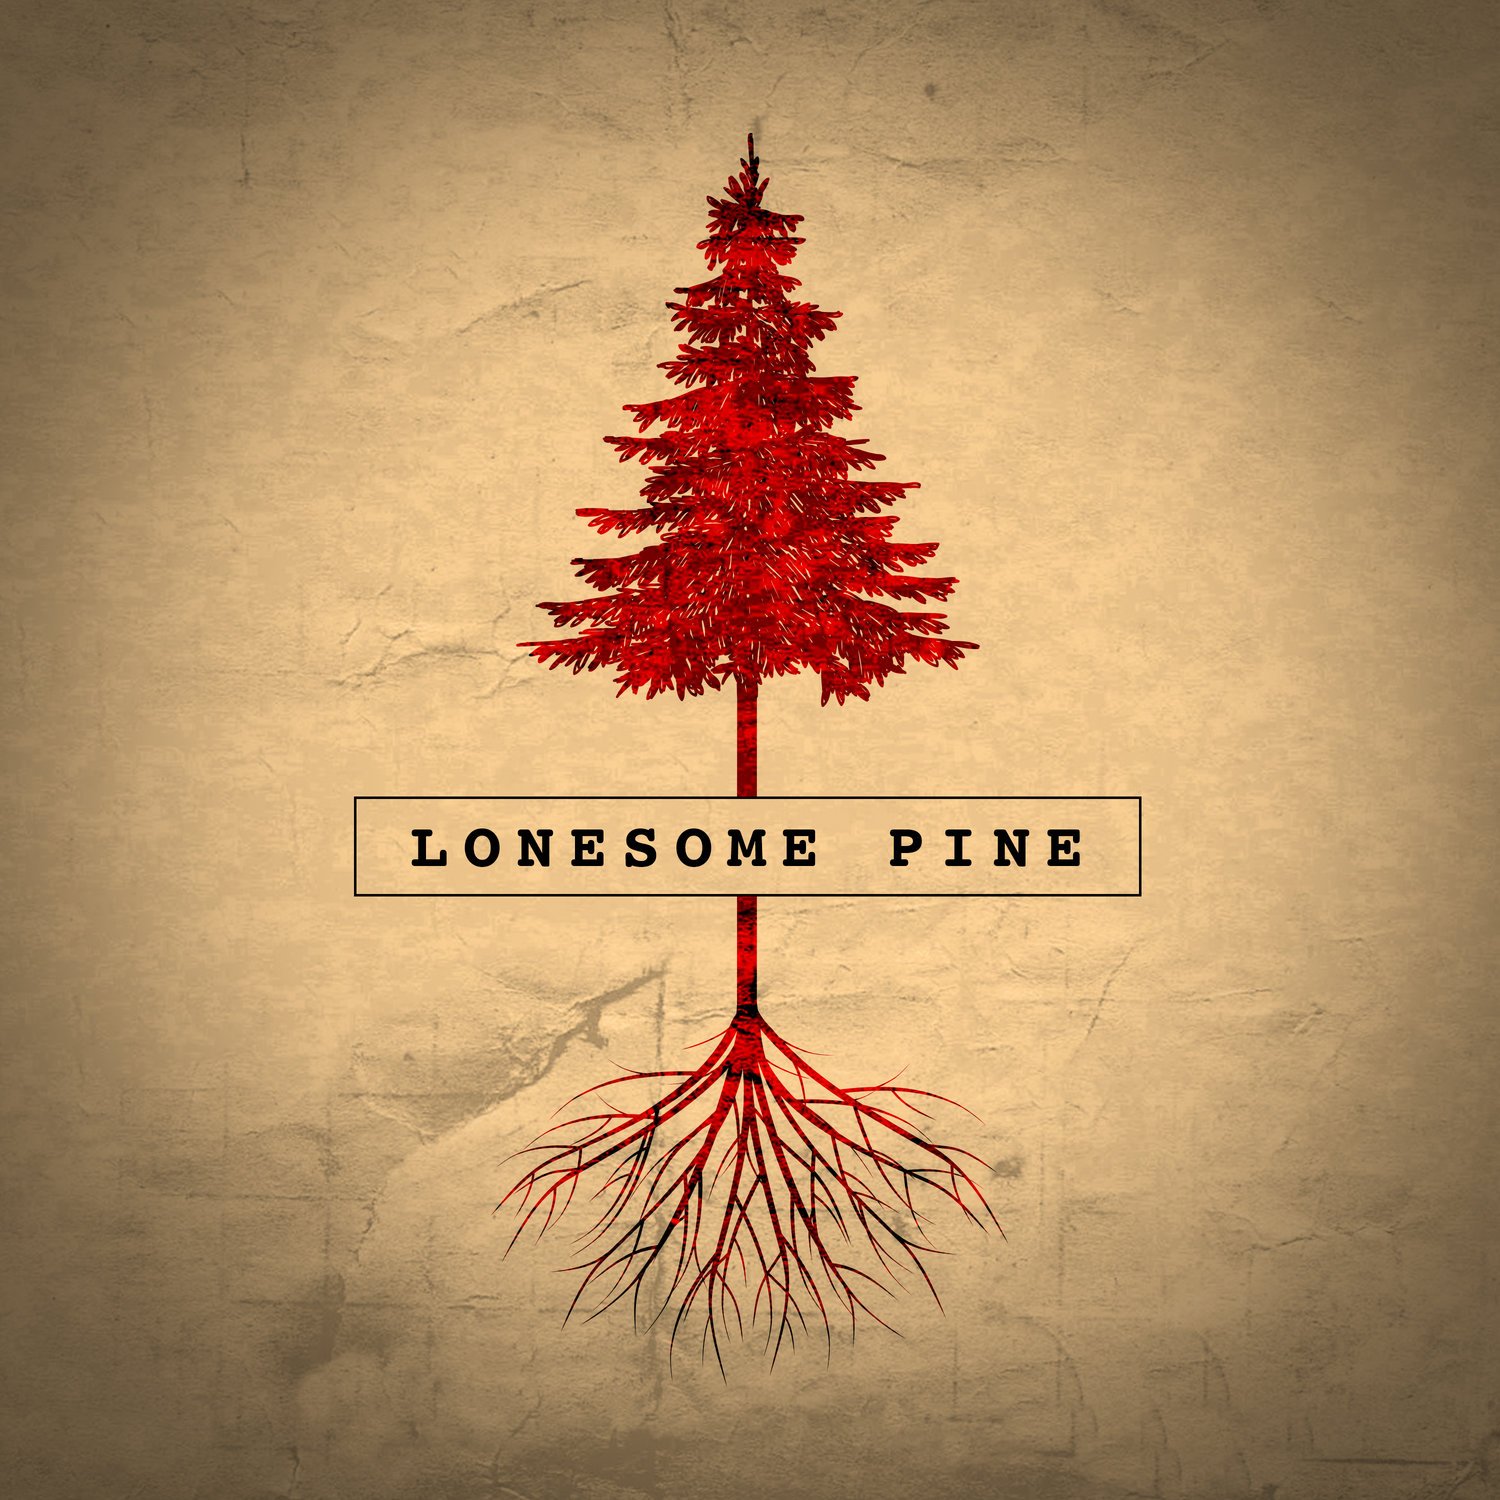 The Lonesome Pine Podcast